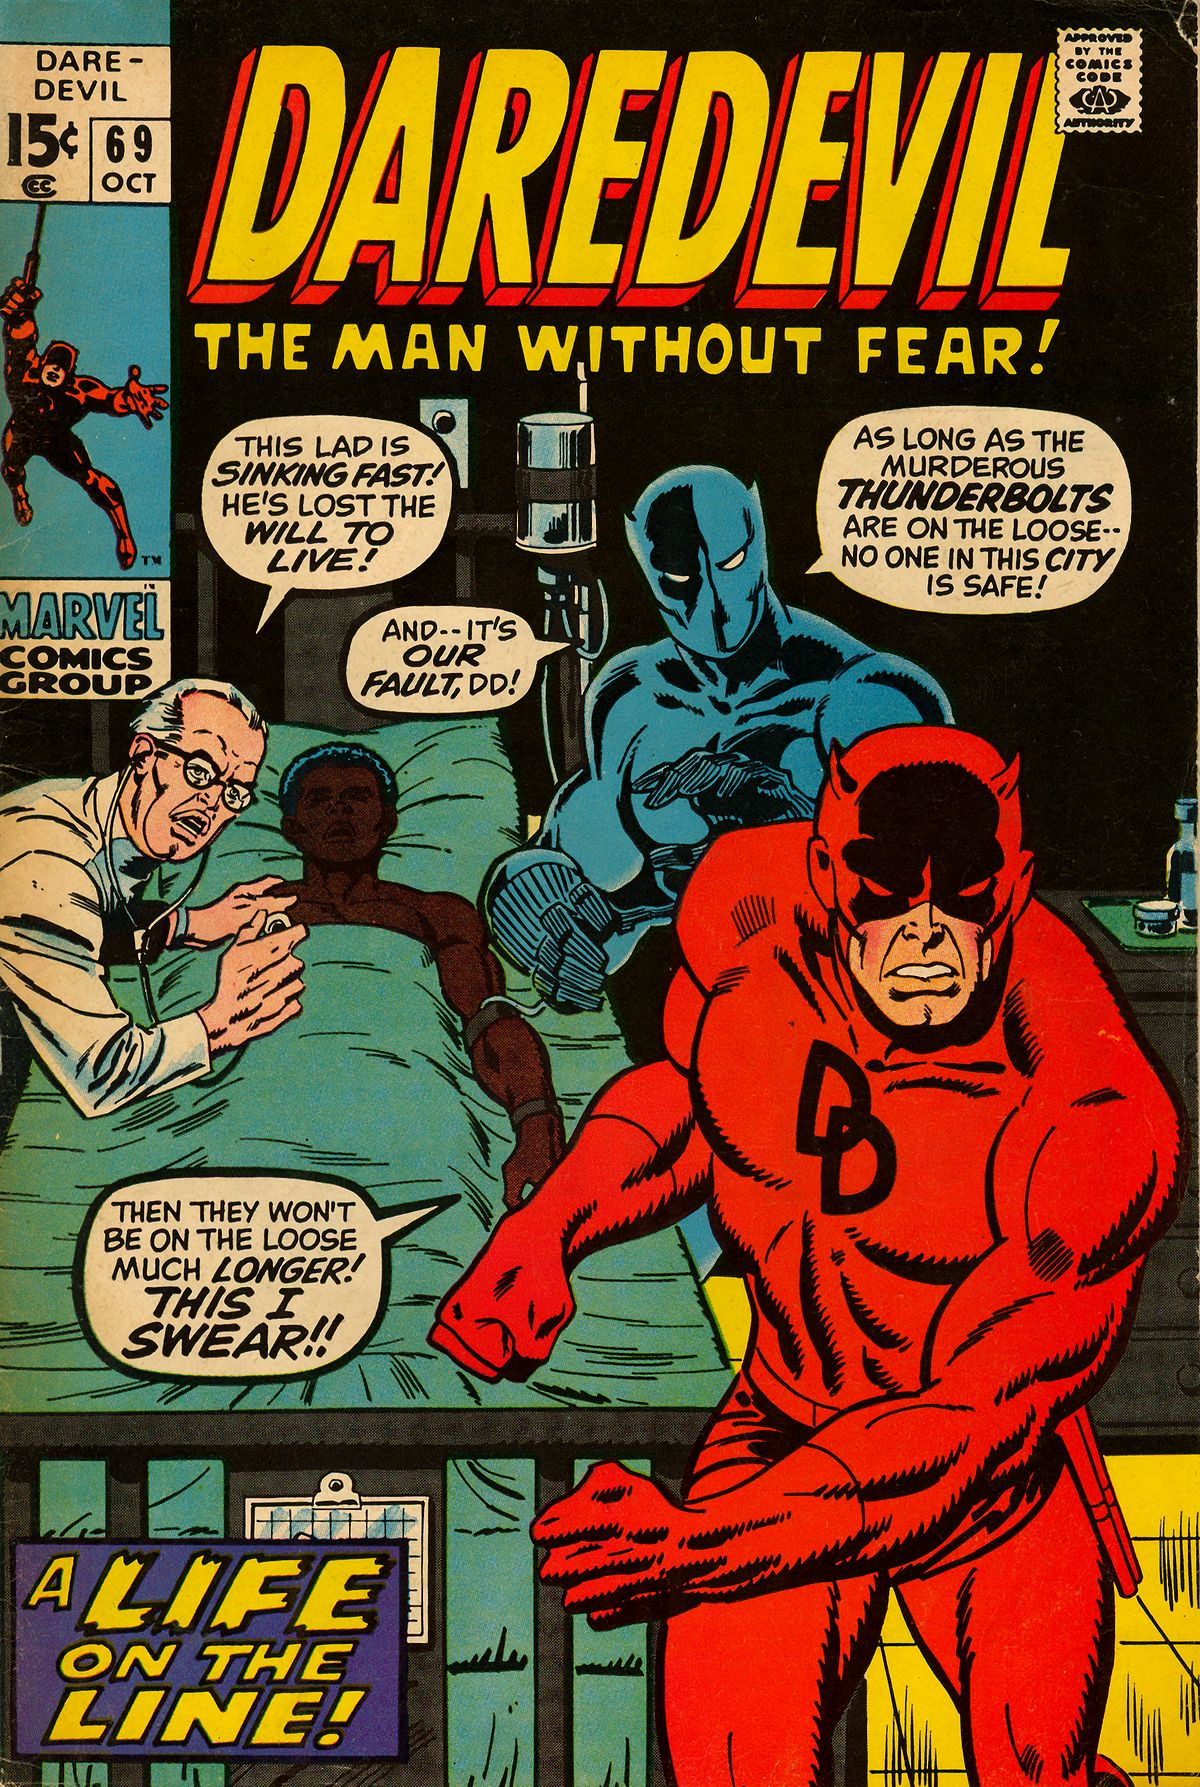 Daredevil (1964) #69, cover by Sal Buscema.